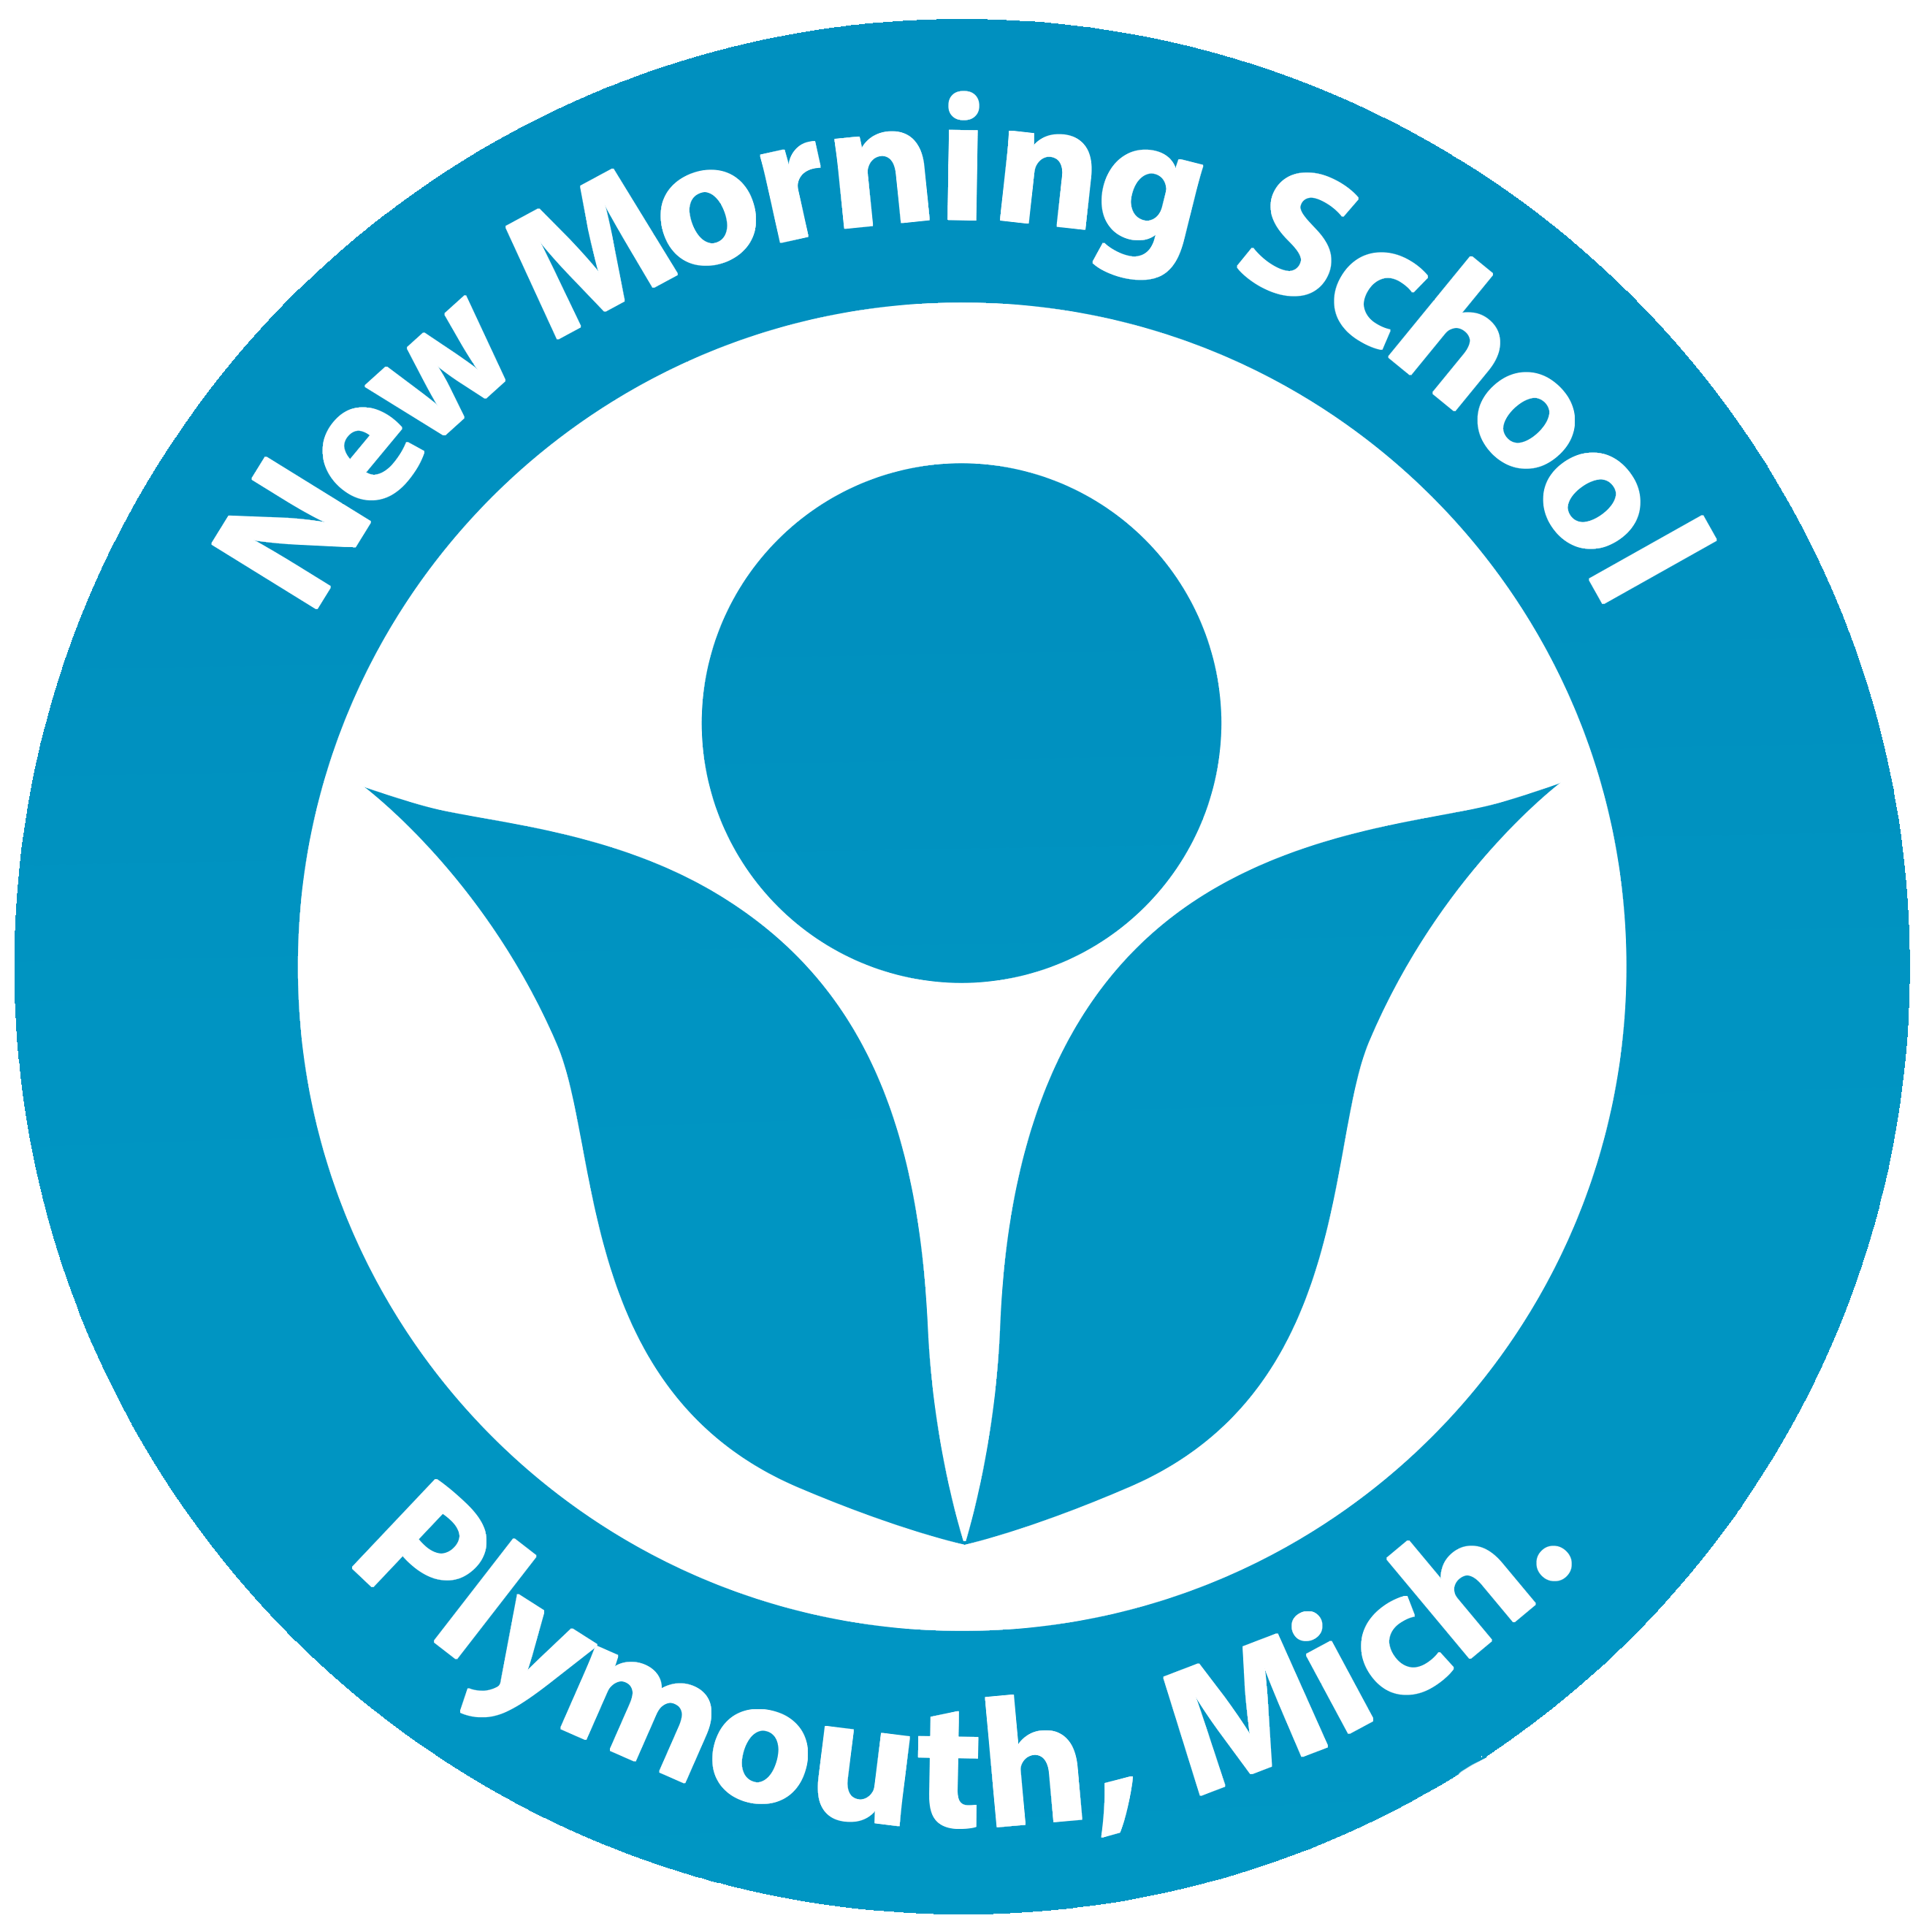 New Morning School